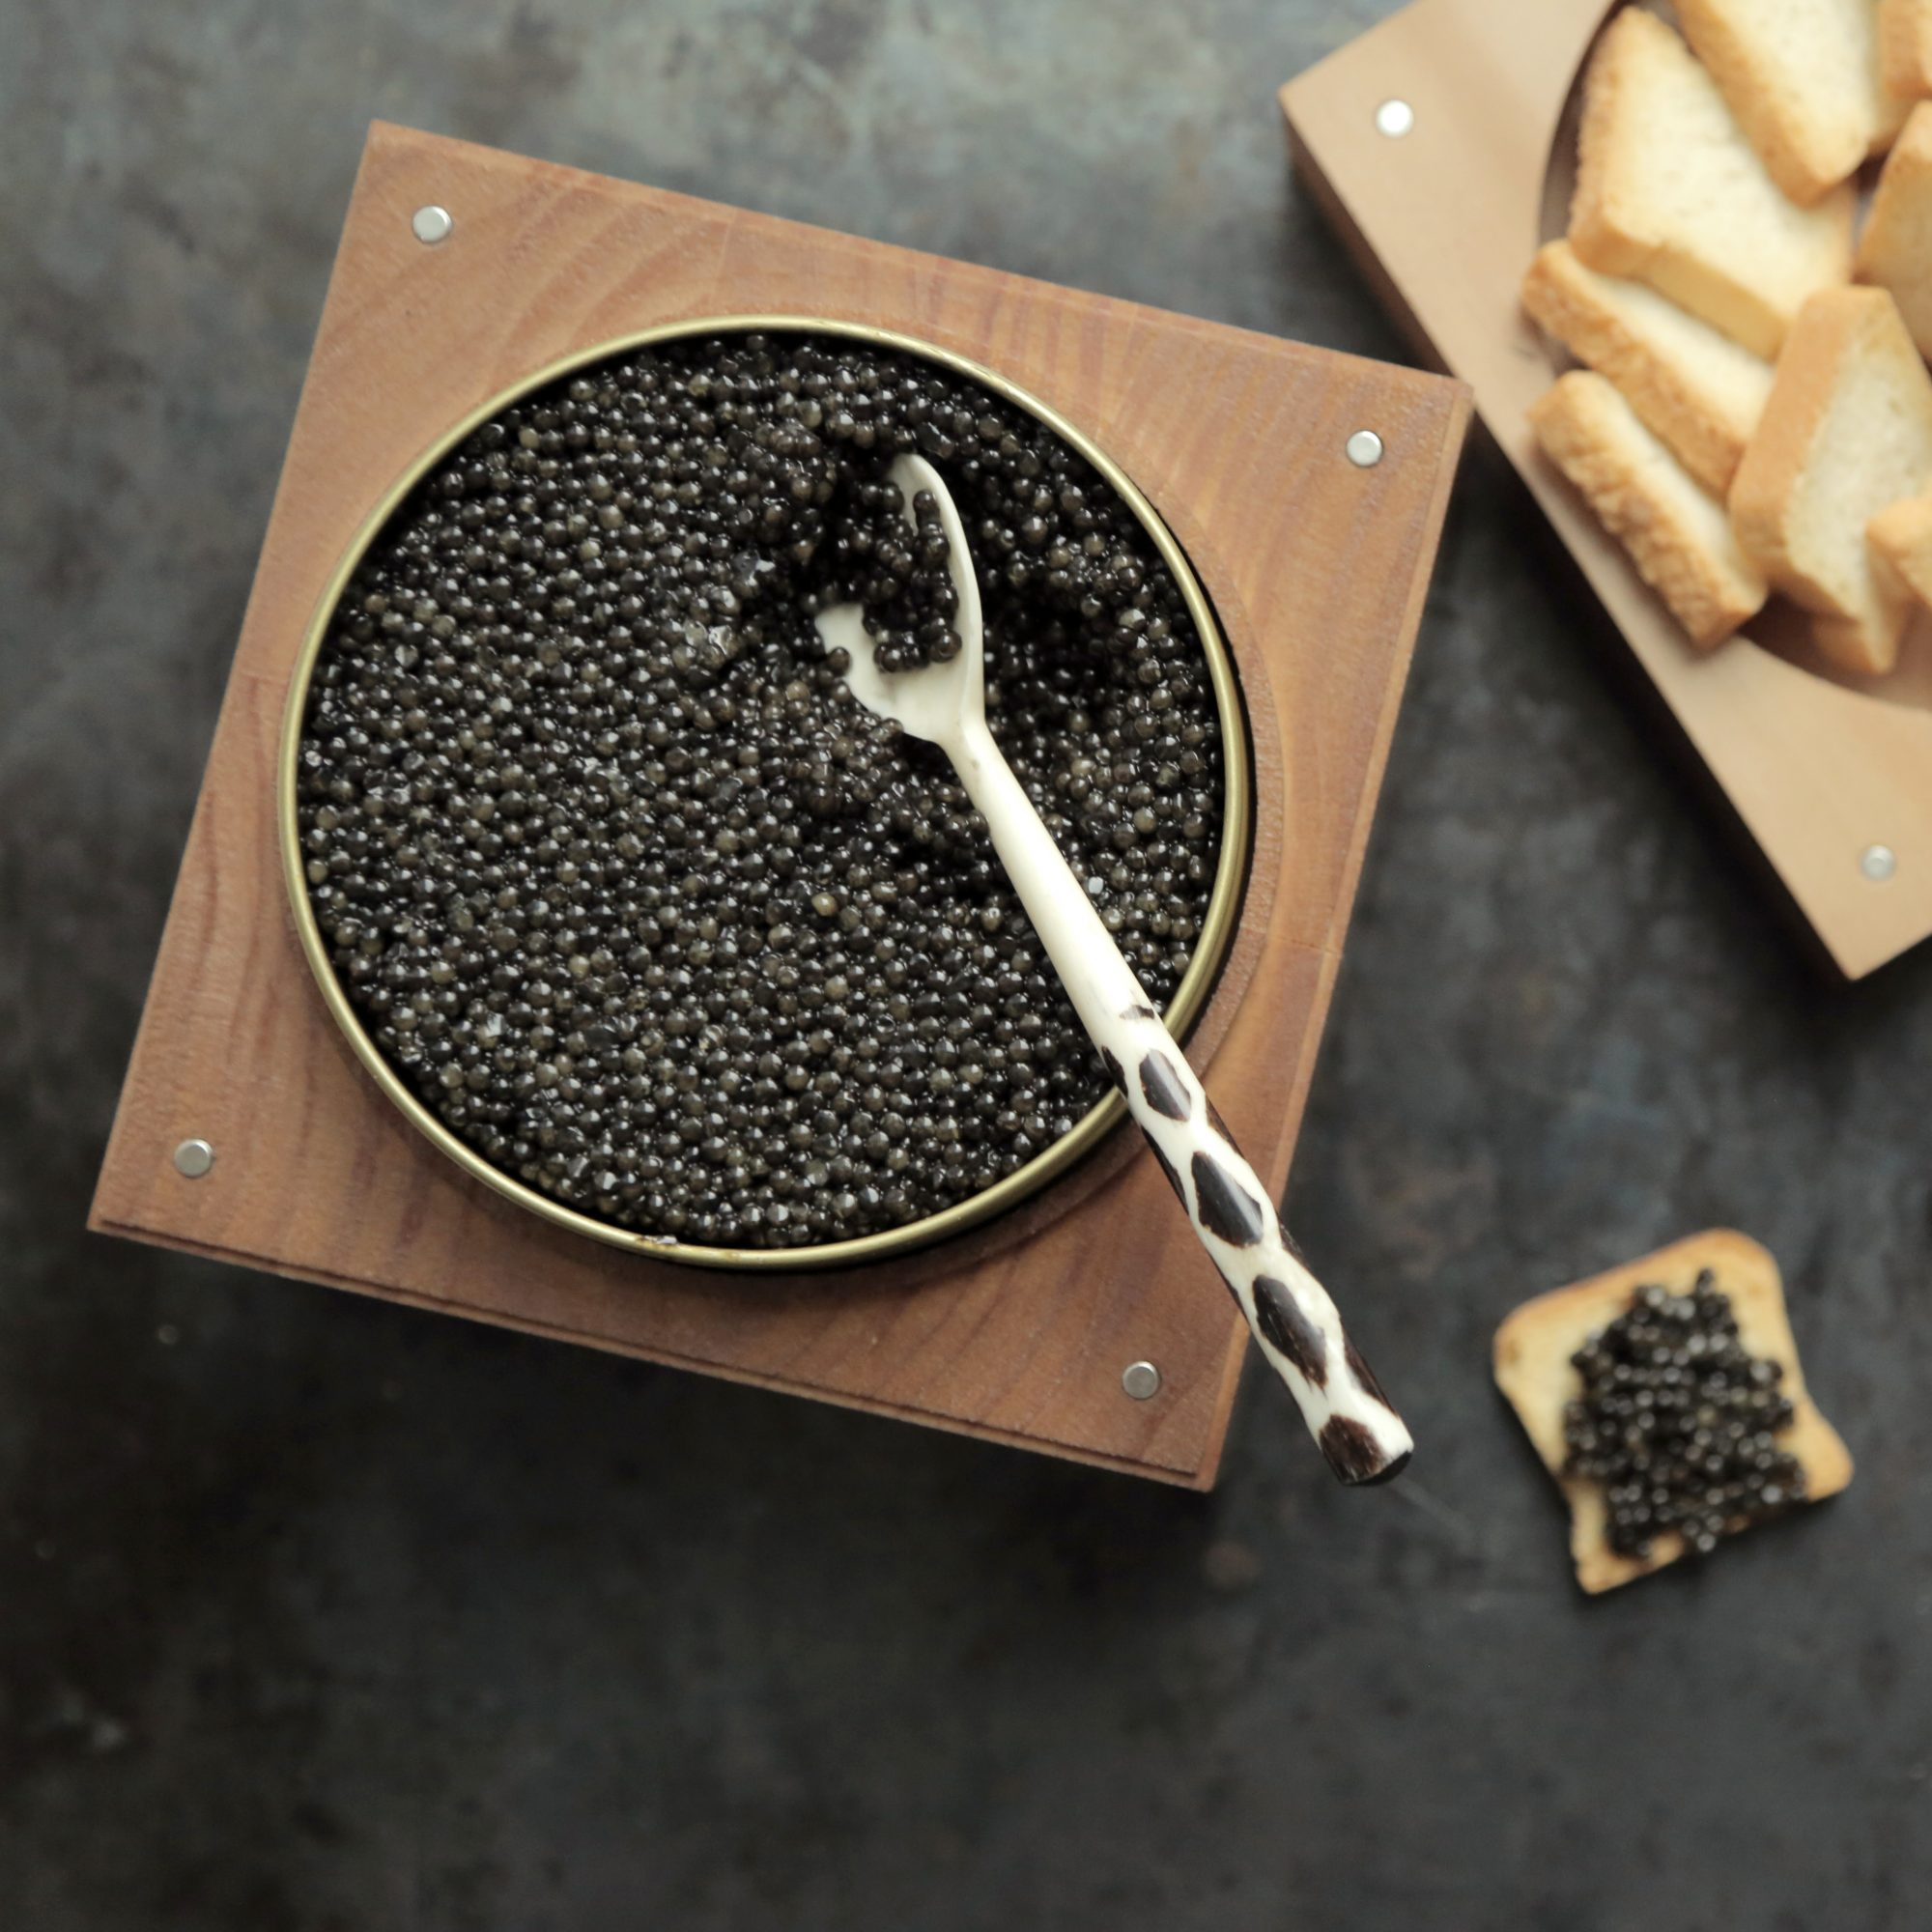 7 Ways to Eat Caviar on Everything